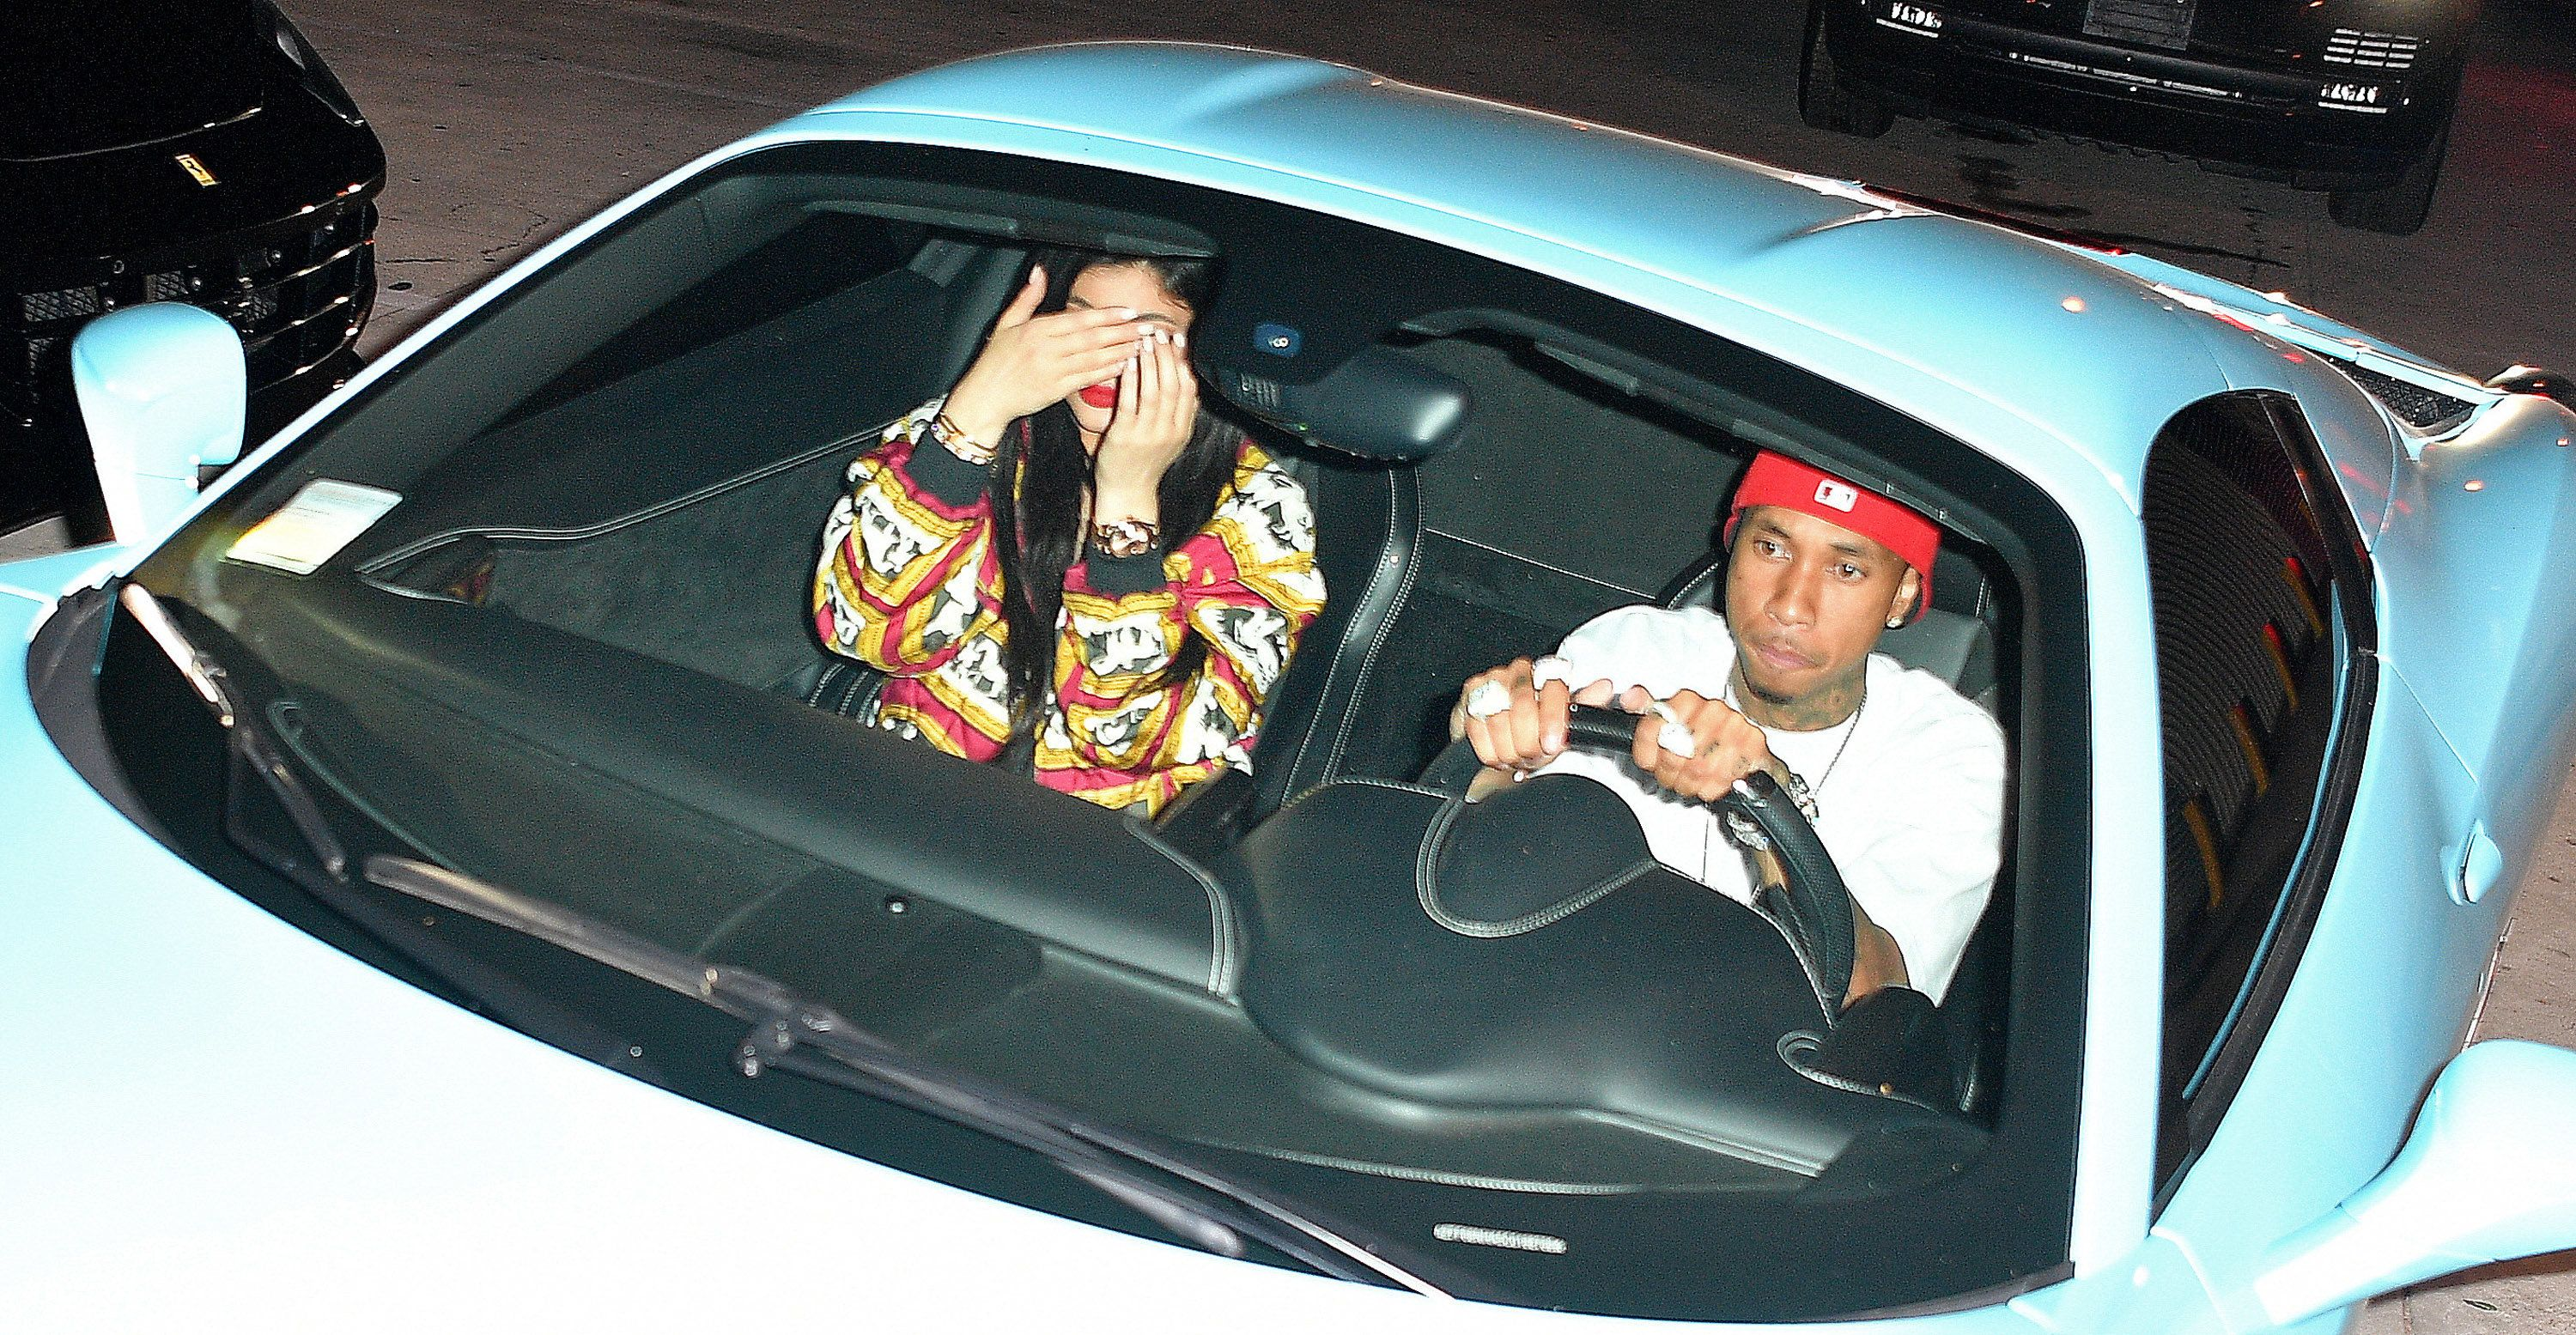 LOS ANGELES, CA - JUNE 25:  Kylie Jenner and Tyga spotted outside of 1 Oak Nightclub on June 25, 2016 in Los Angeles, California.  (Photo by Prince Williams/GC Images)